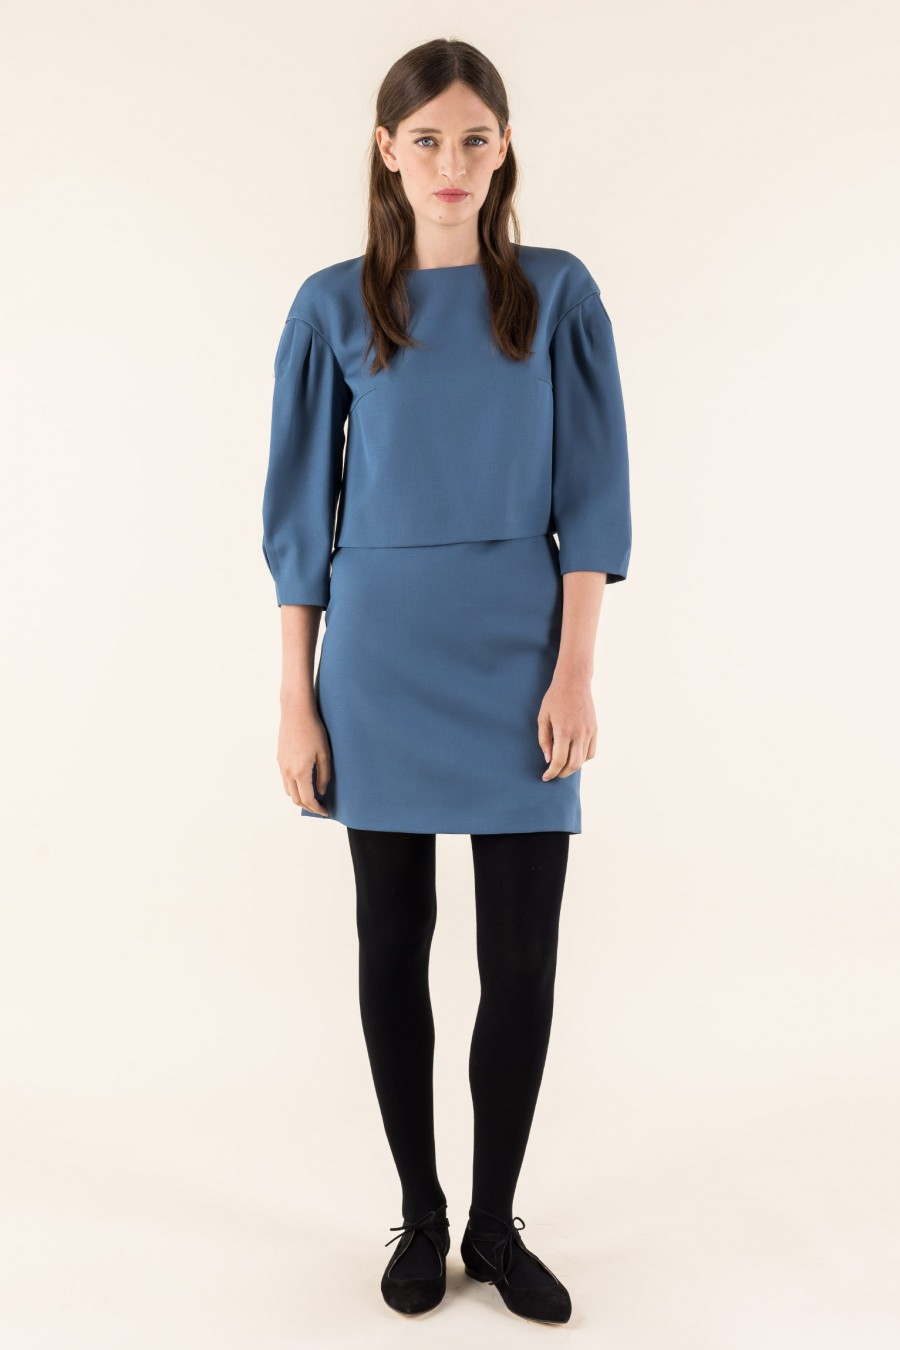 A-line robin-egg blue skirt